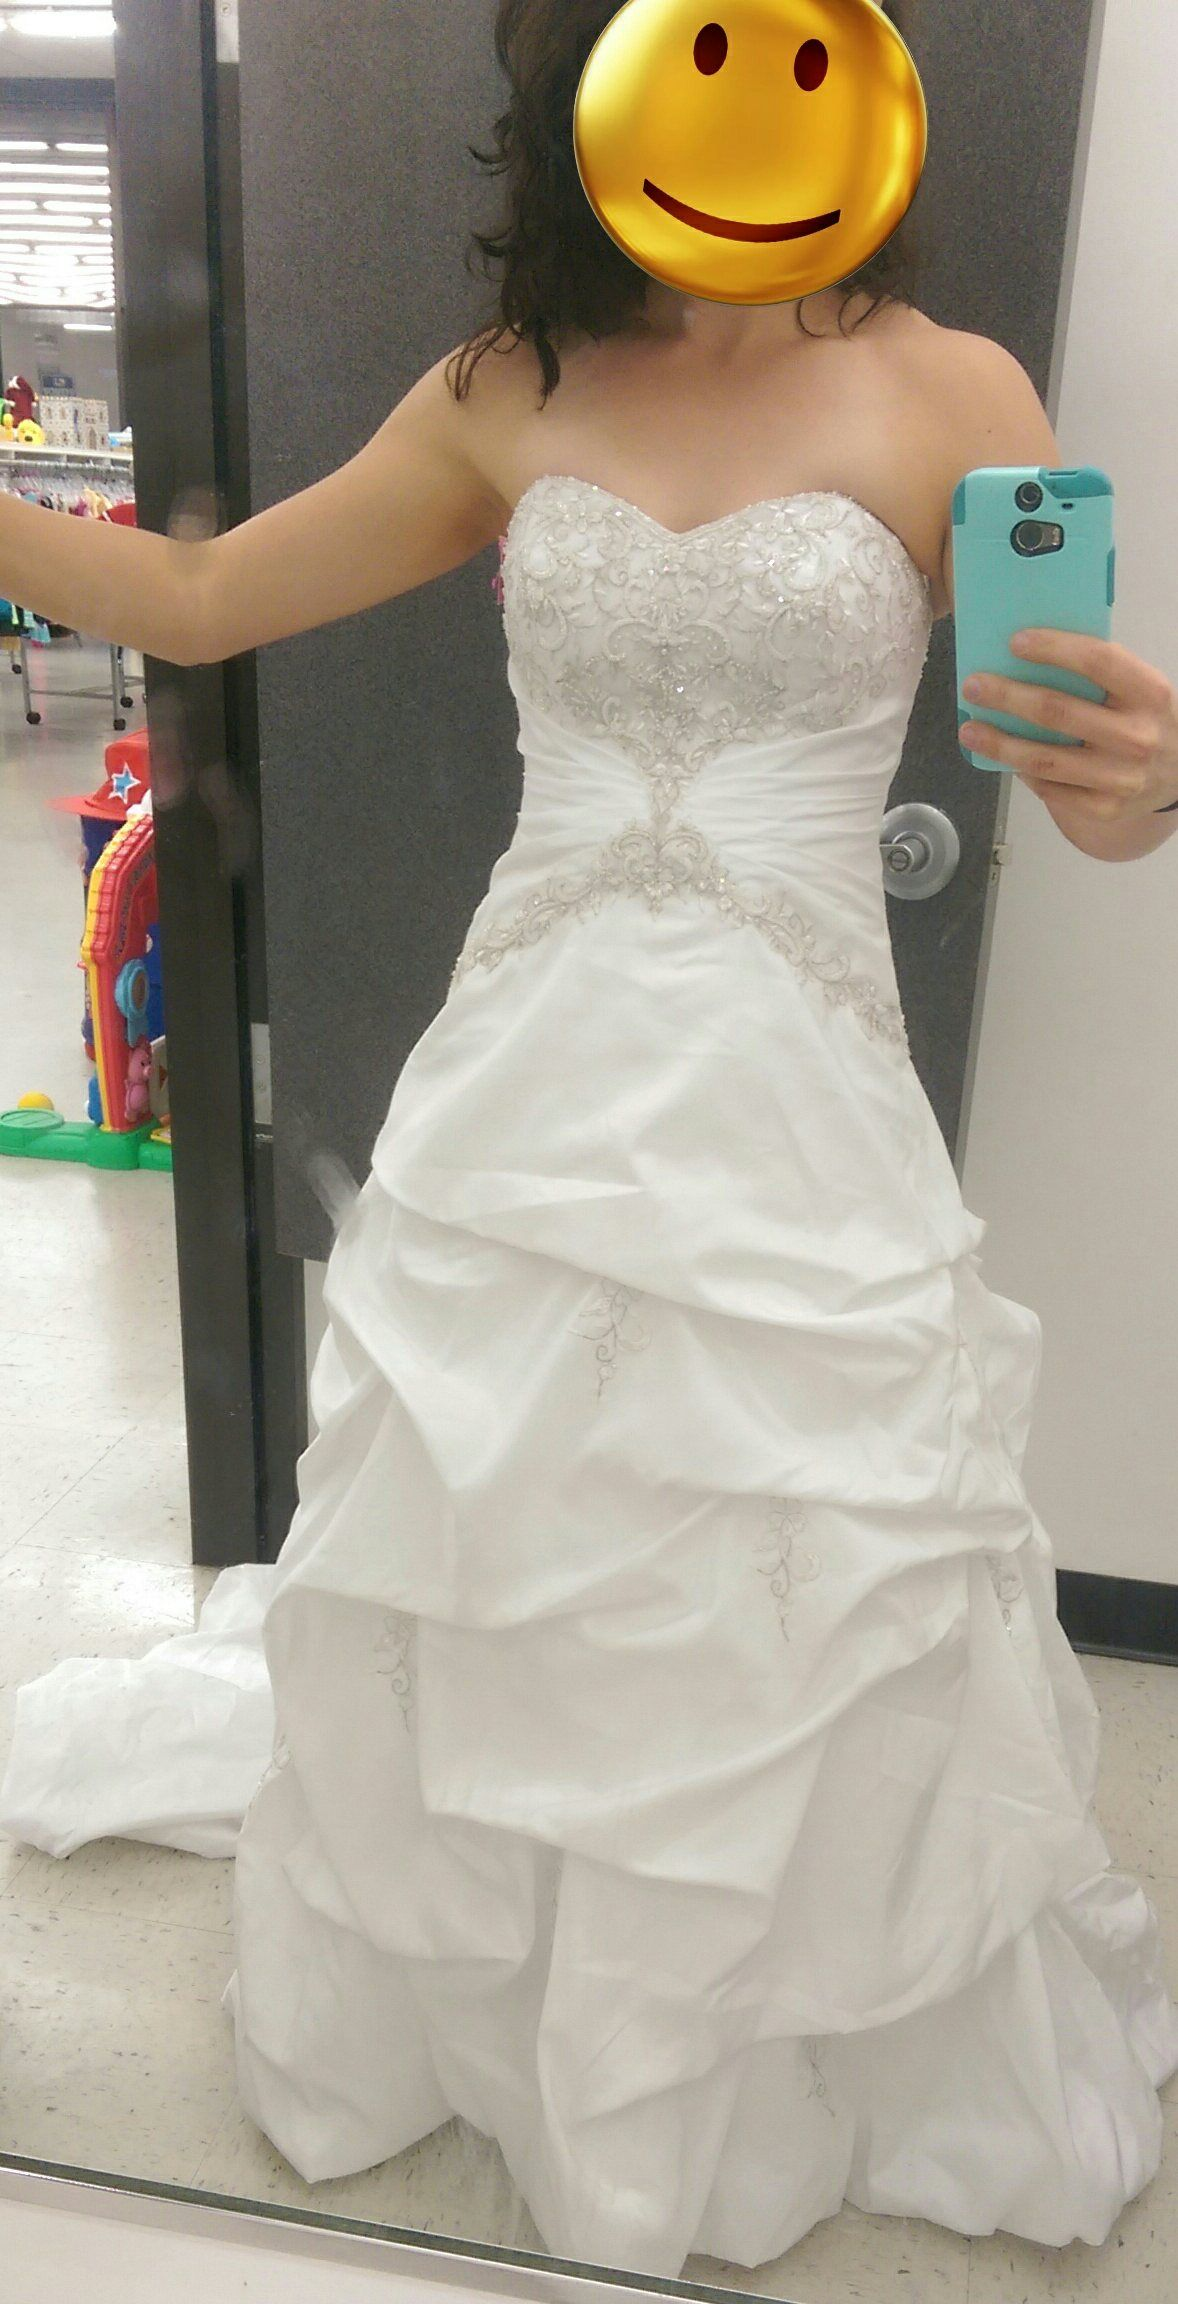 Recently Engaged And Found This Dress In Great Condition At Goodwill